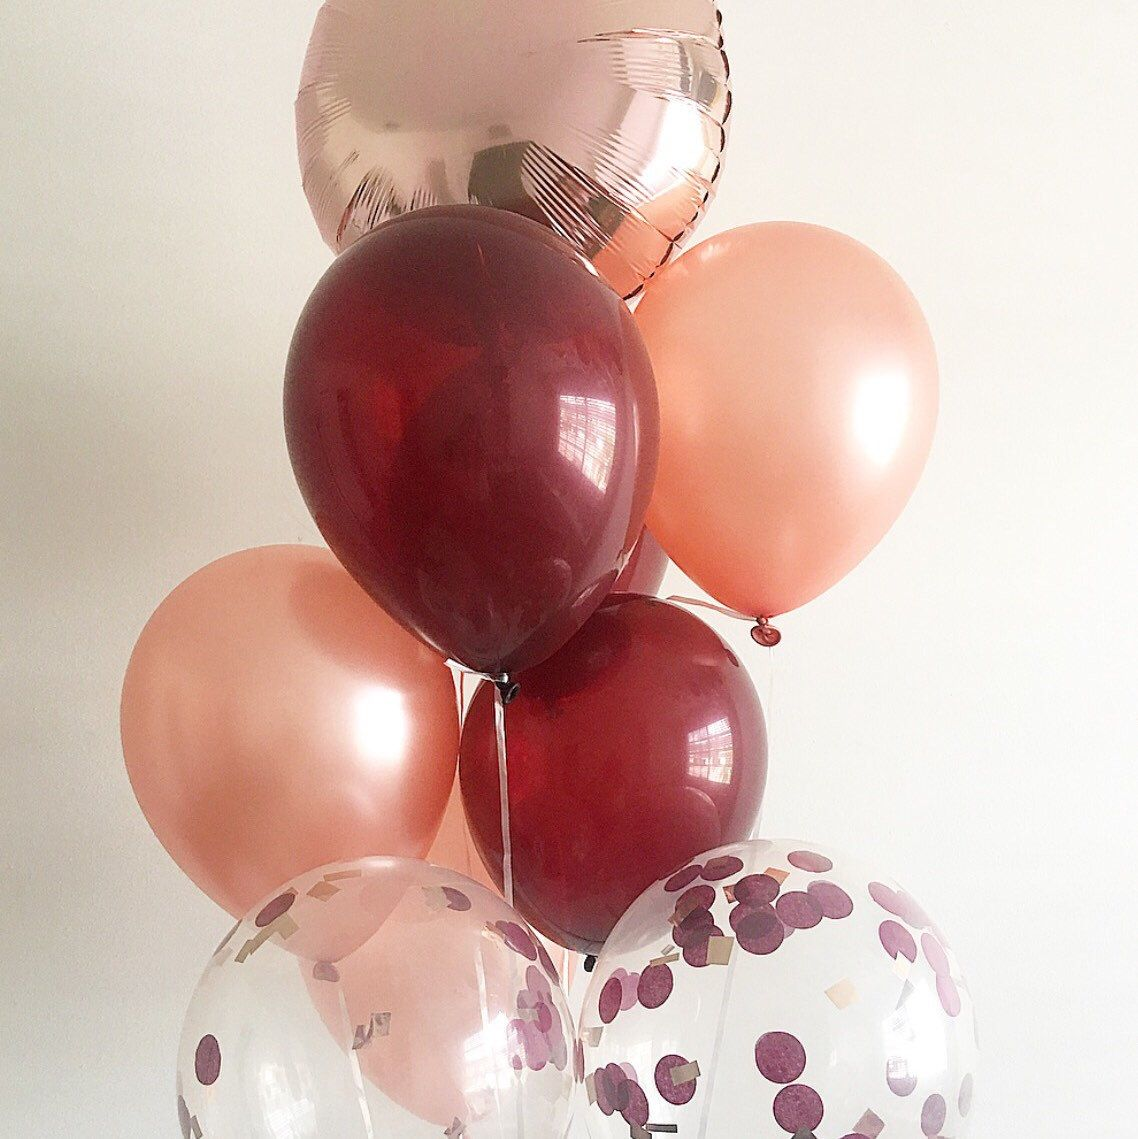 My Original Best Selling Rose Gold Balloon Bouquet Has A New Sister Rose Gold And Burgu Rose Gold Bridal Shower Fall Bridal Shower Wedding Shower Decorations